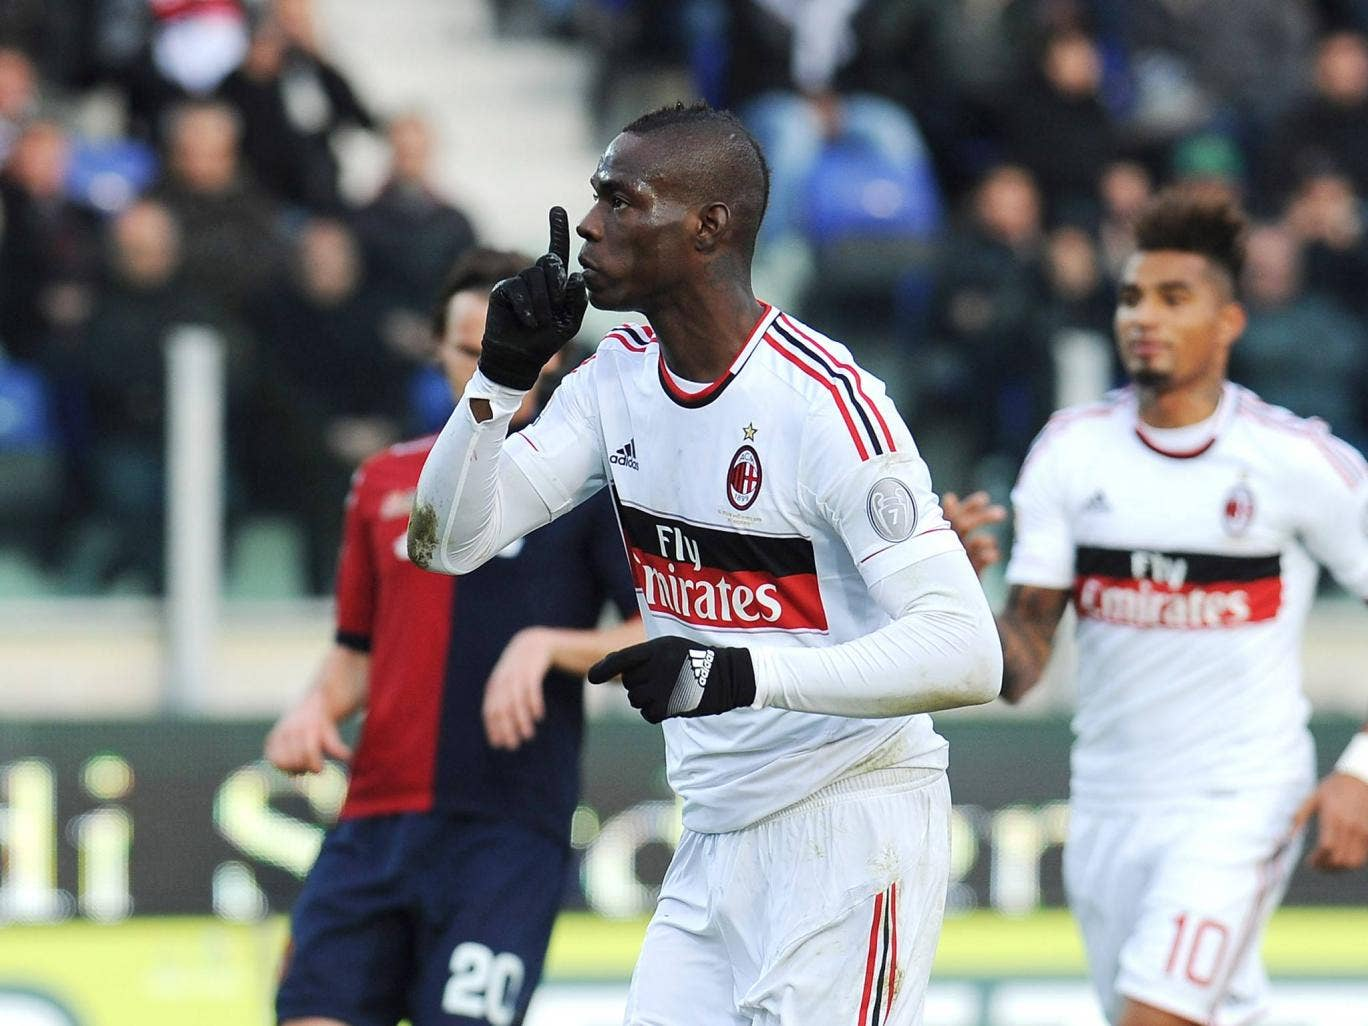 Mario Balotelli of AC Milan celebrates his goal scored from the penalty spot during the Serie A match between Cagliari Calcio and AC Milan at Stadio Is Arenas